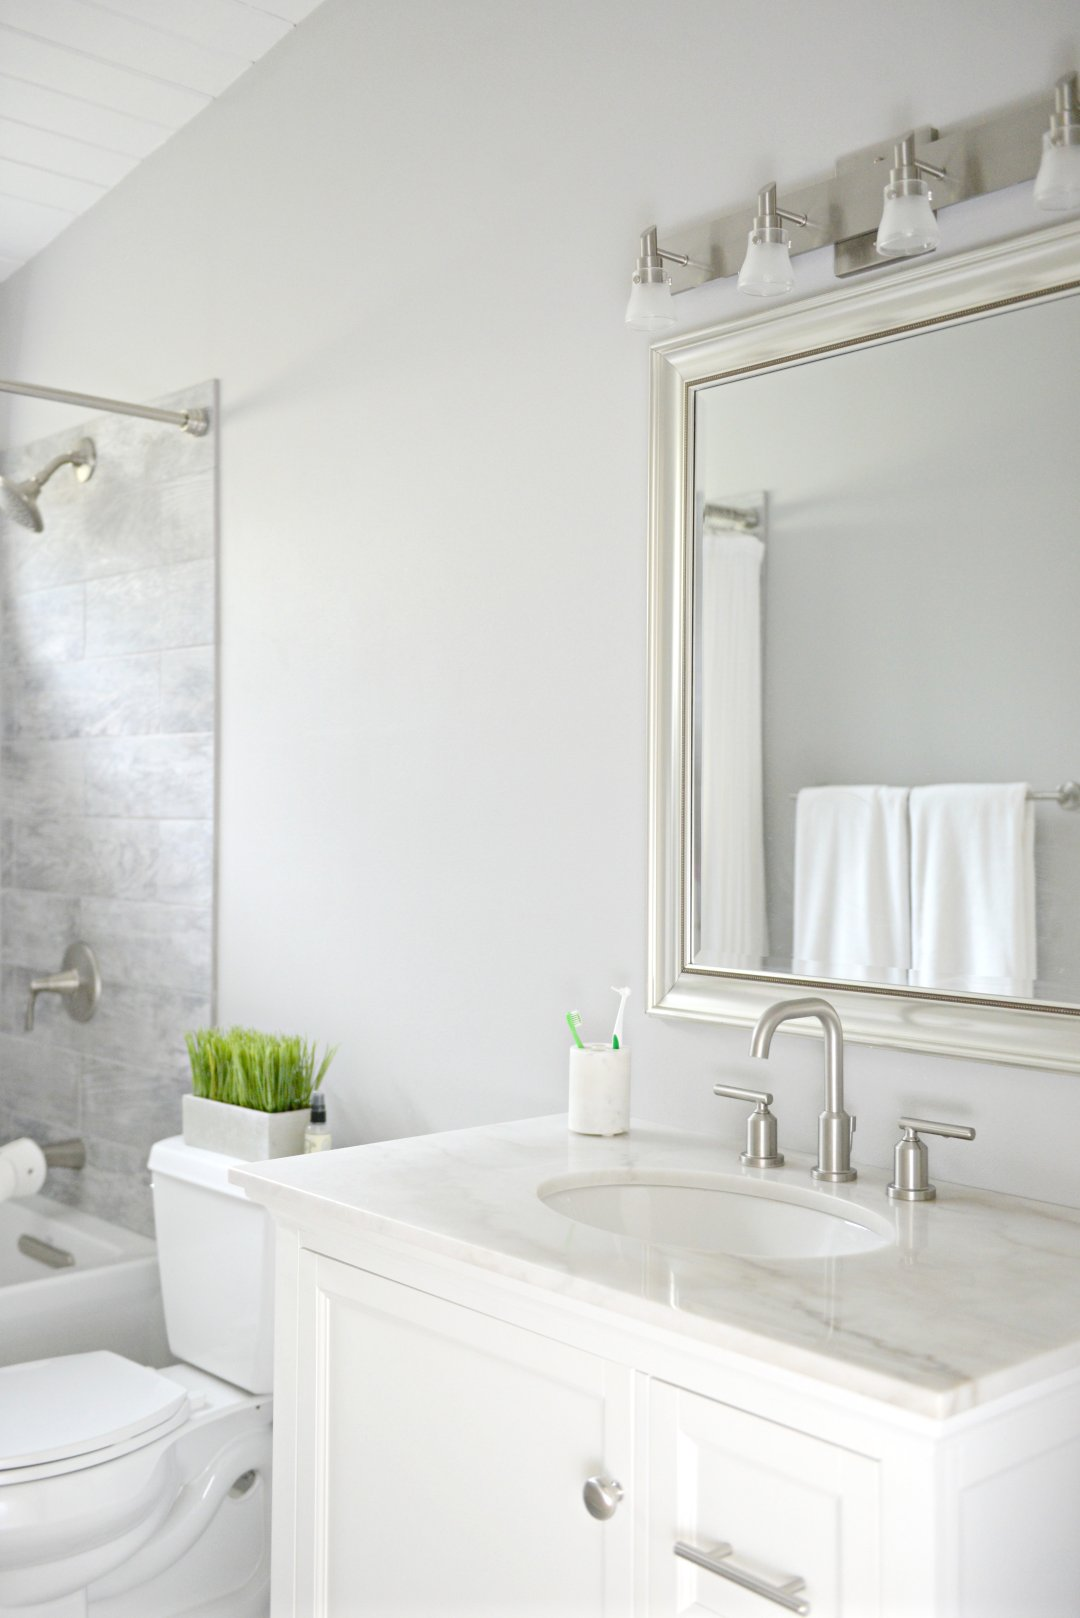 Kids Guest Bathroom Update On A Budget Hello Splendid - Bathroom updates on a budget